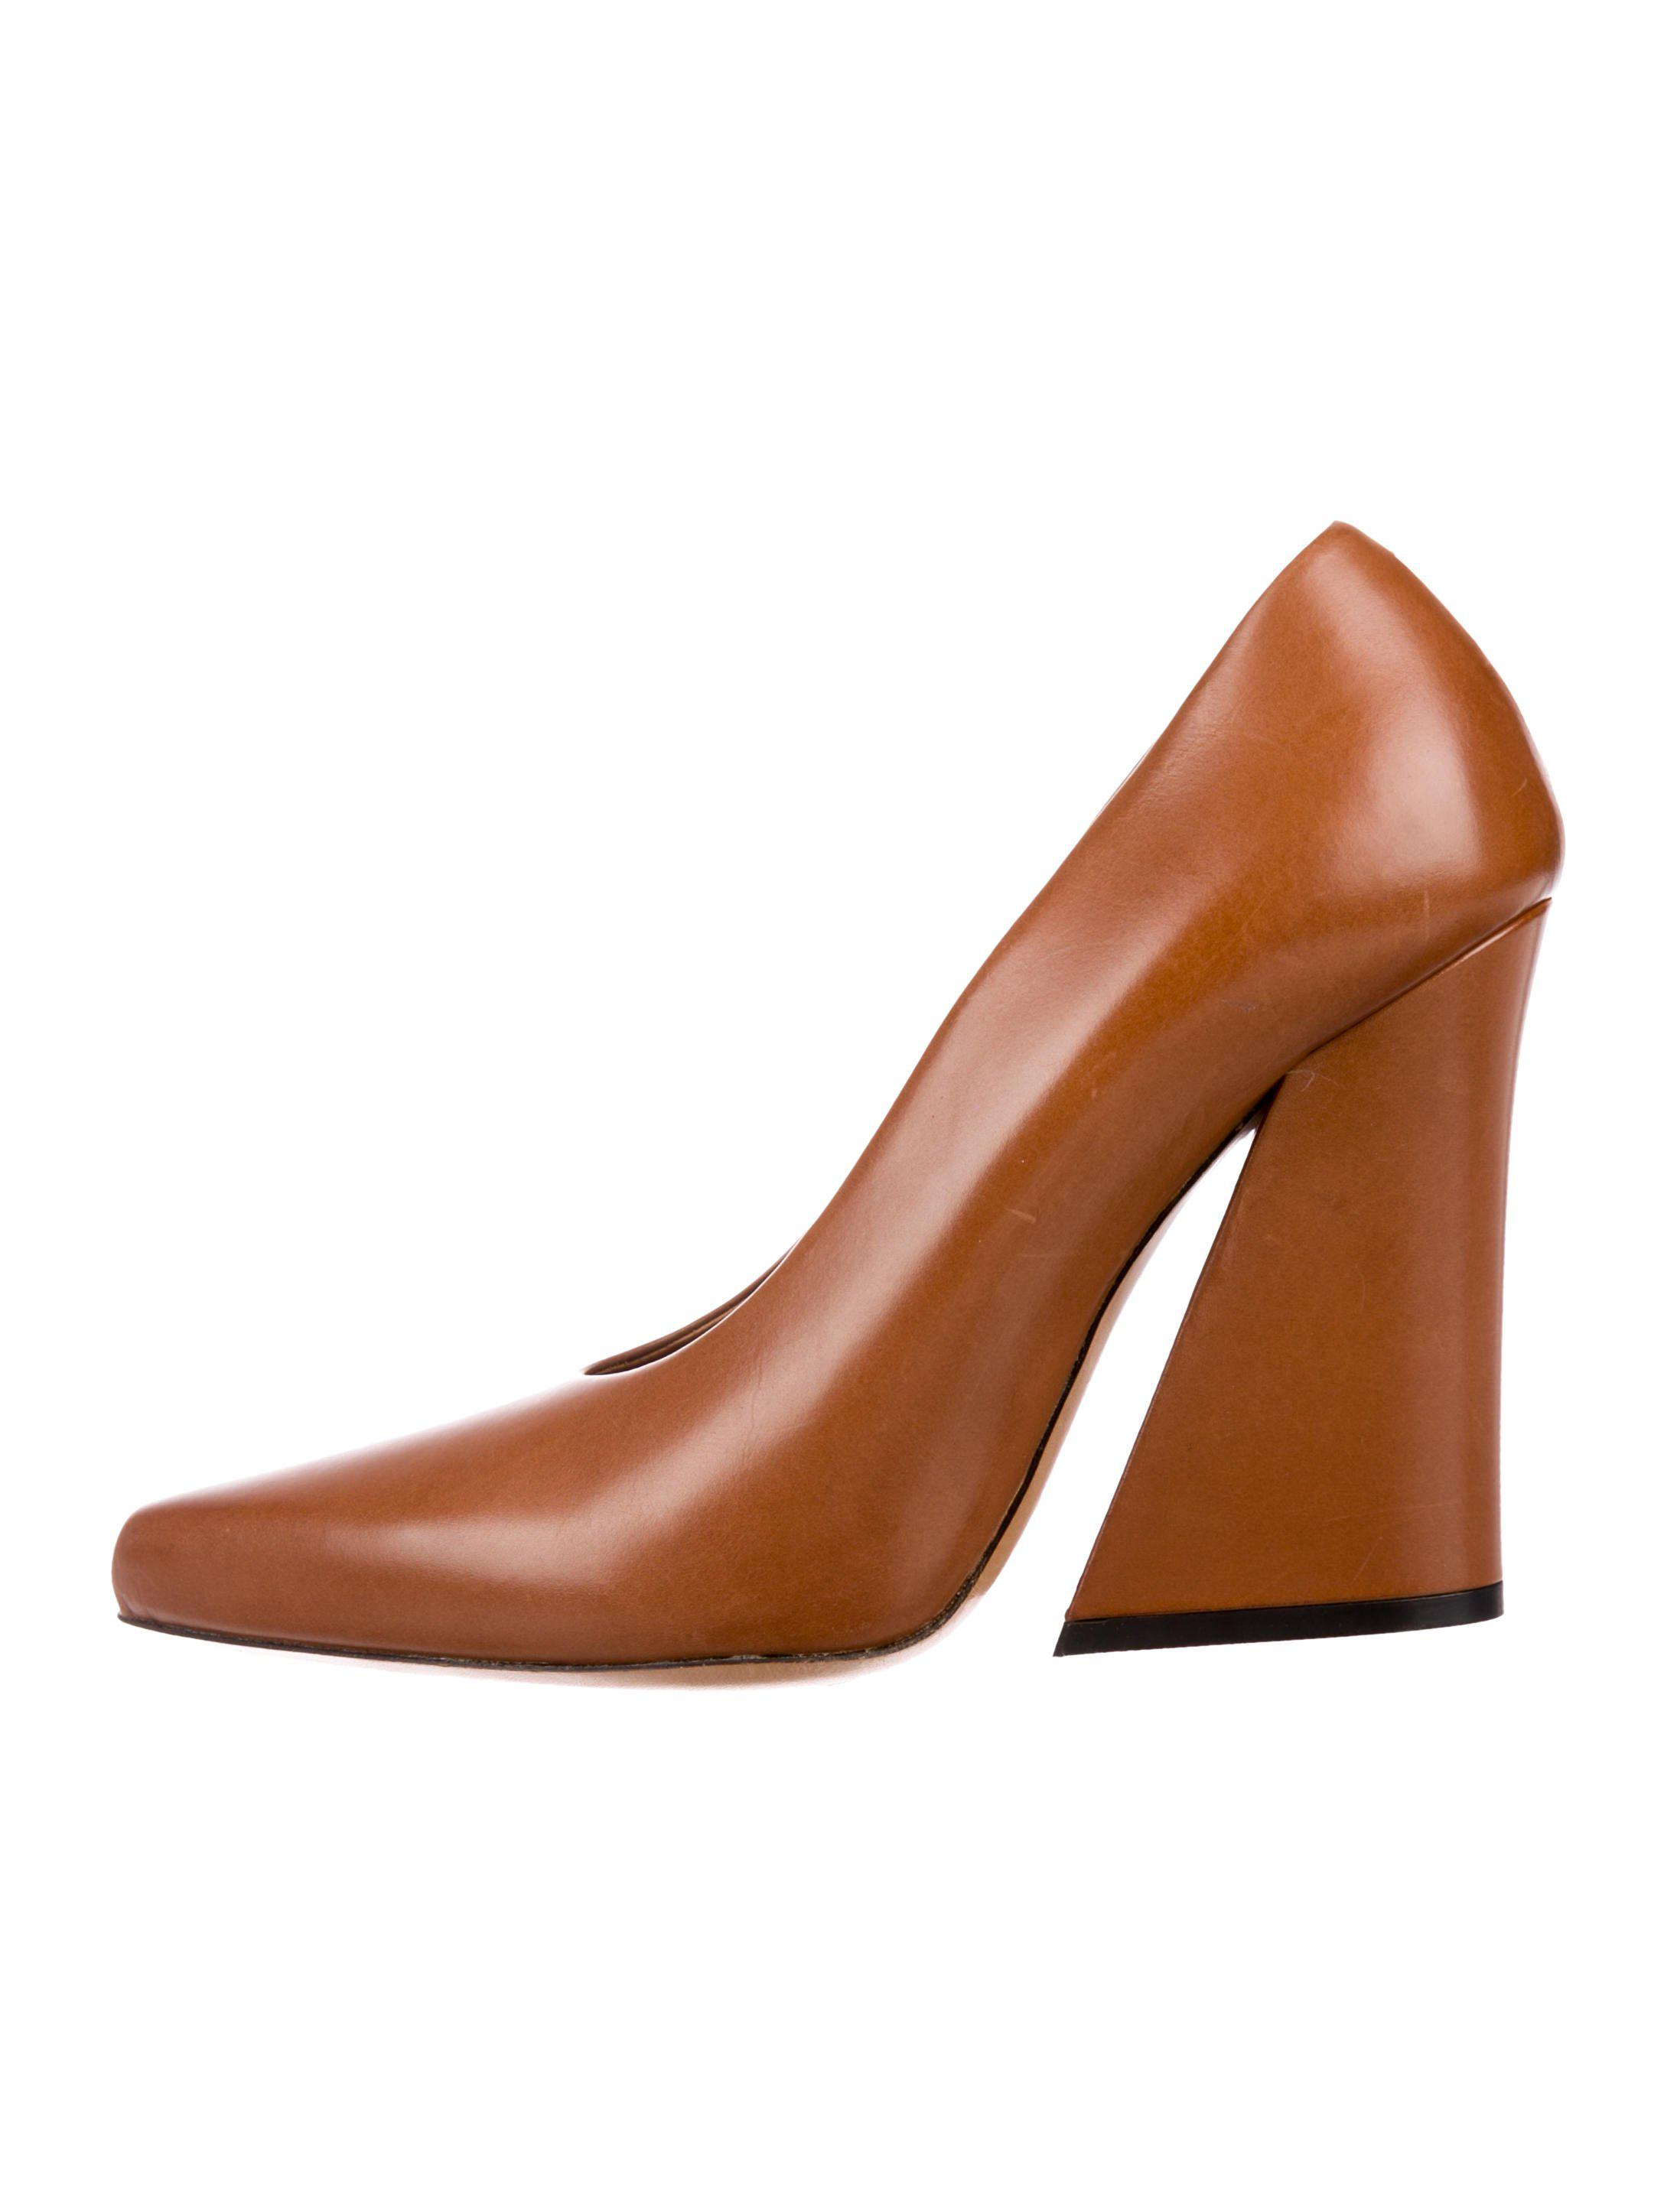 1280a7bdbeccfa Lyst - Dries Van Noten Pointed-toe Leather Pumps Tan in Natural